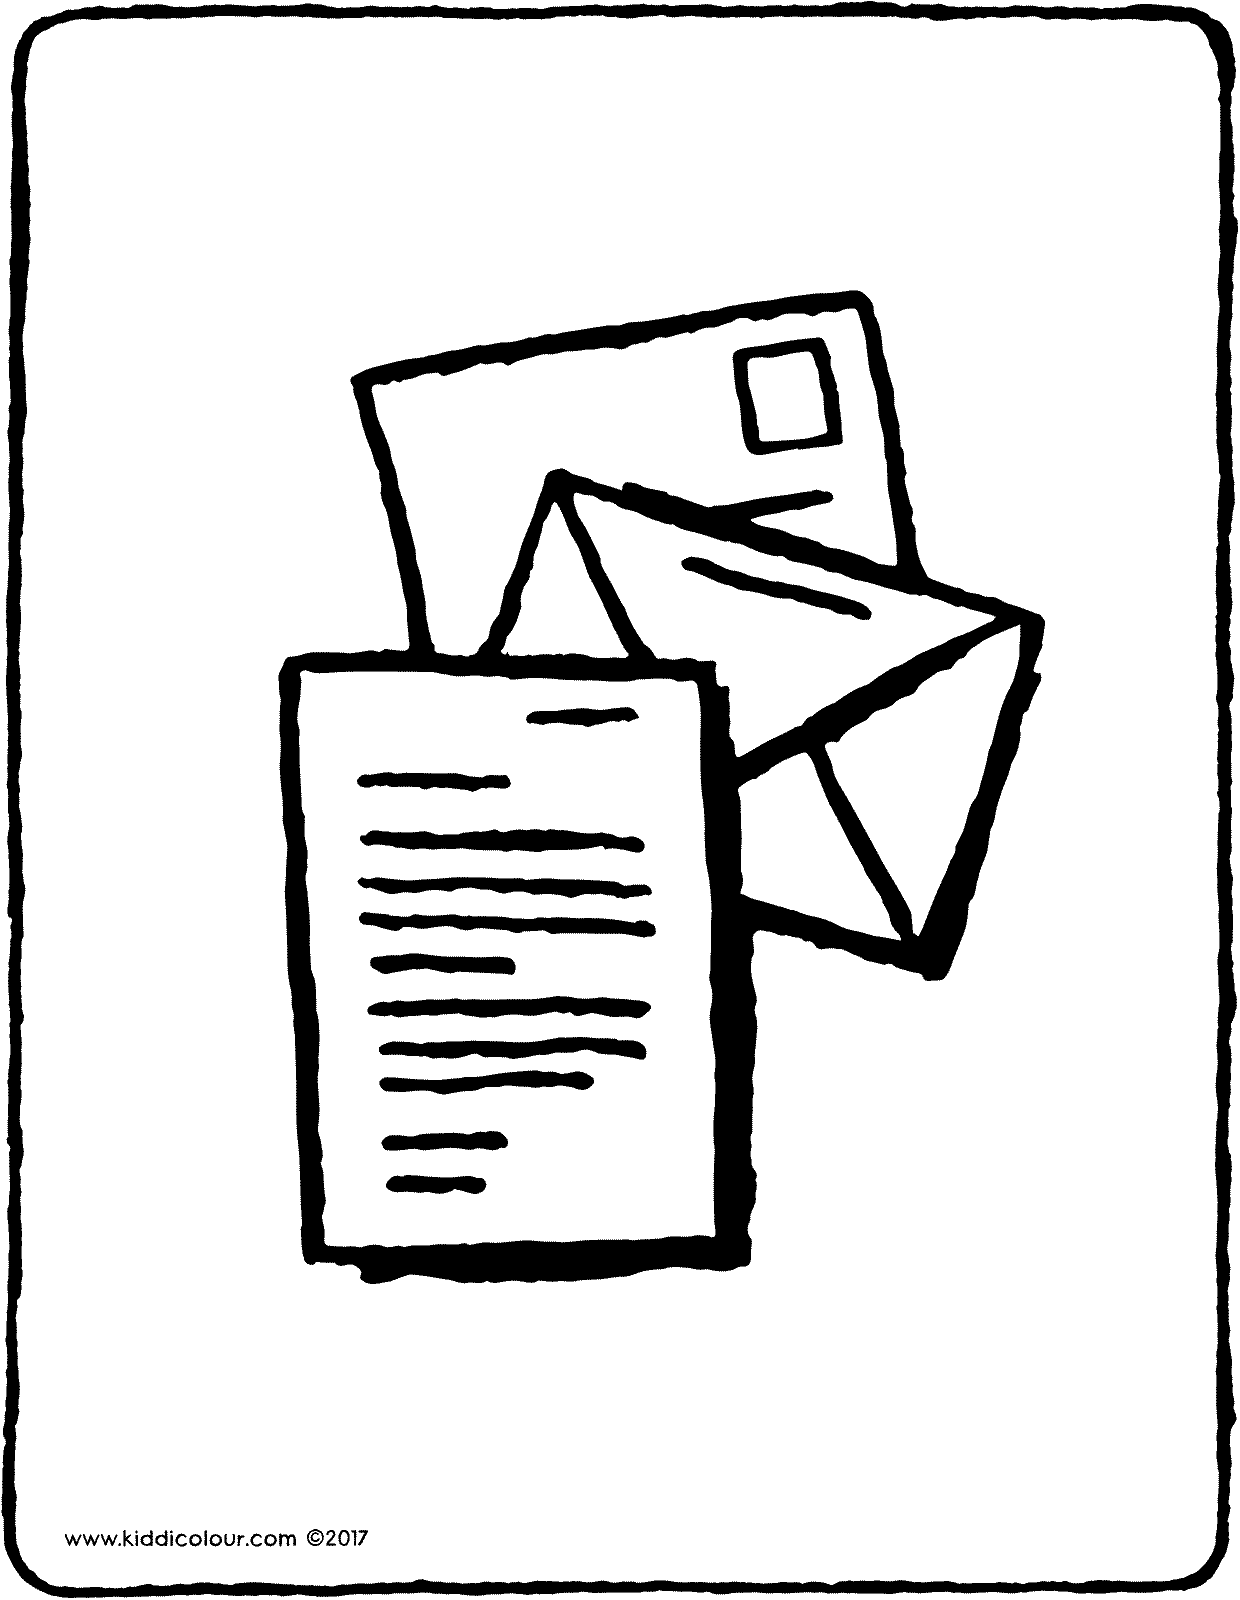 a letter in an envelope colouring page page drawing picture 01V